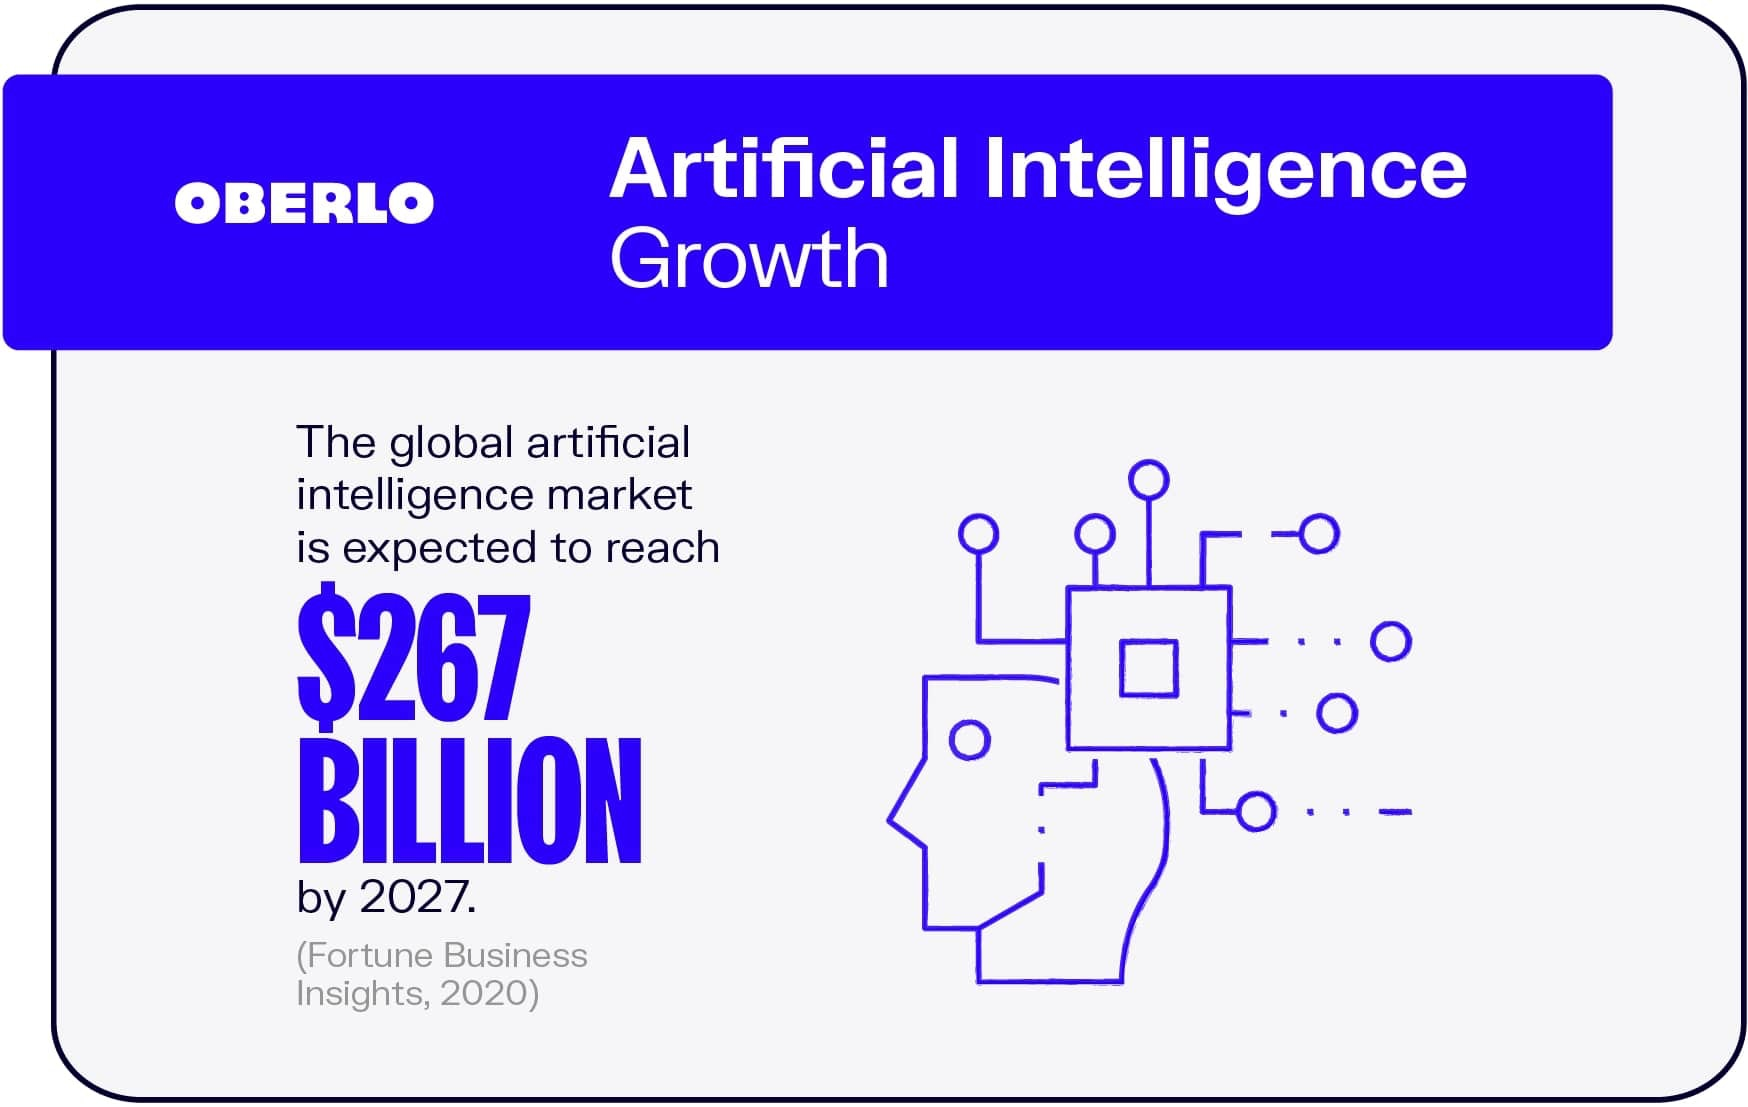 Artificial Intelligence Growth